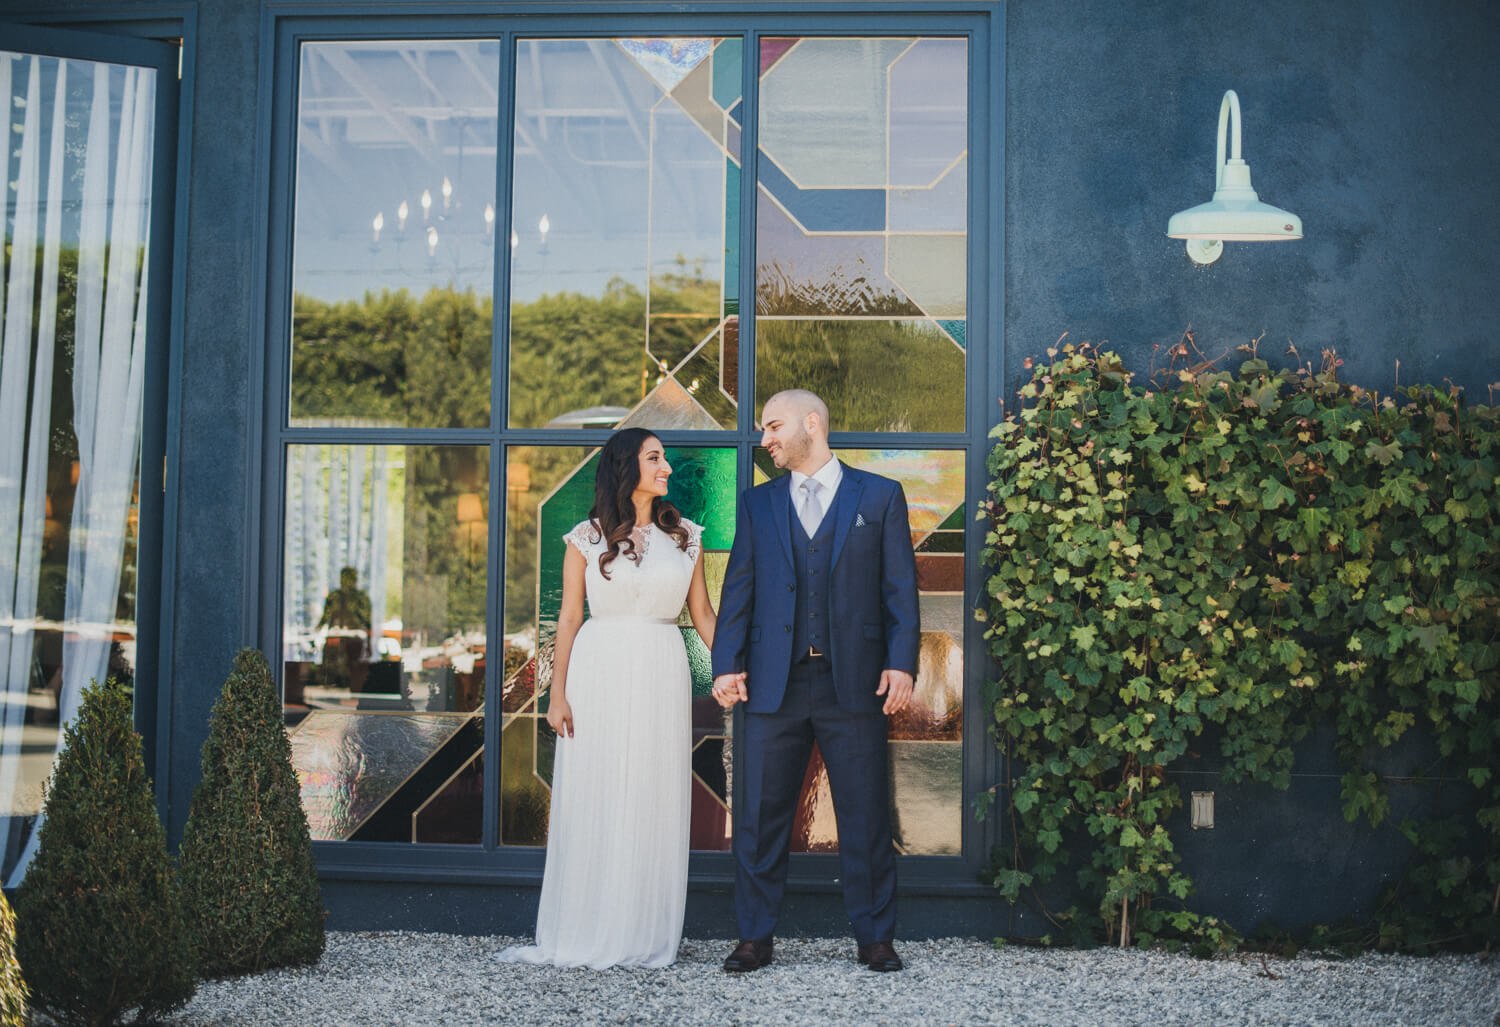 The Fig House: The Complete Venue Guide For The Bride